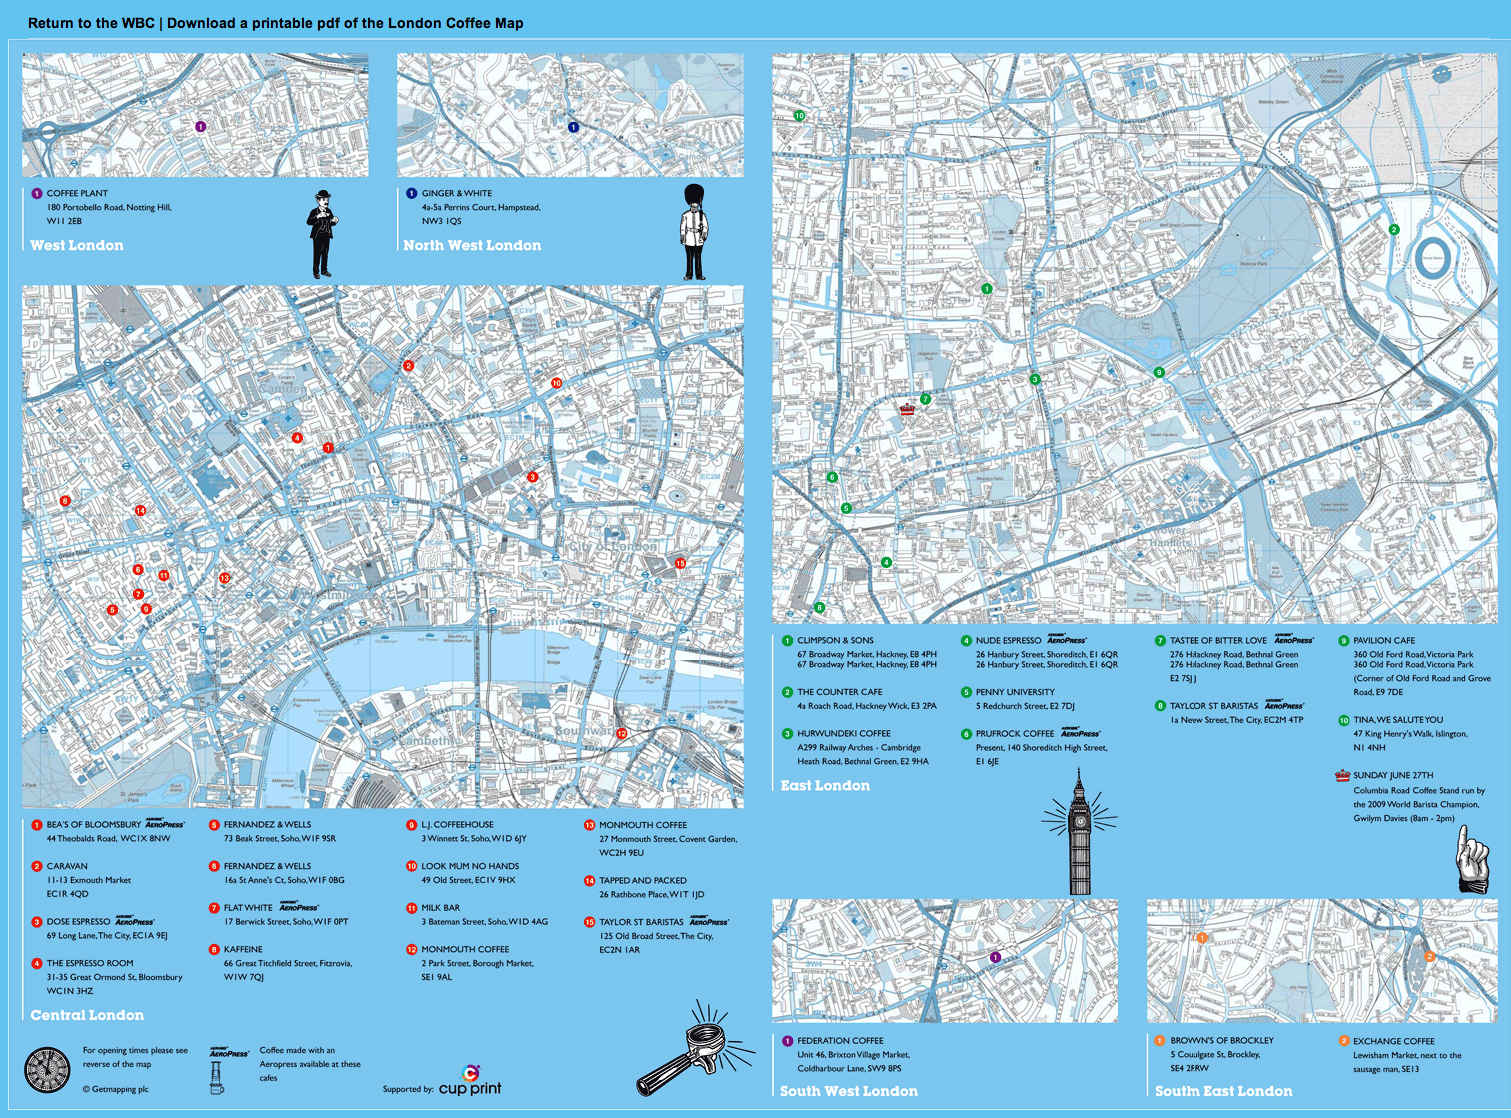 2010_london_coffee_map